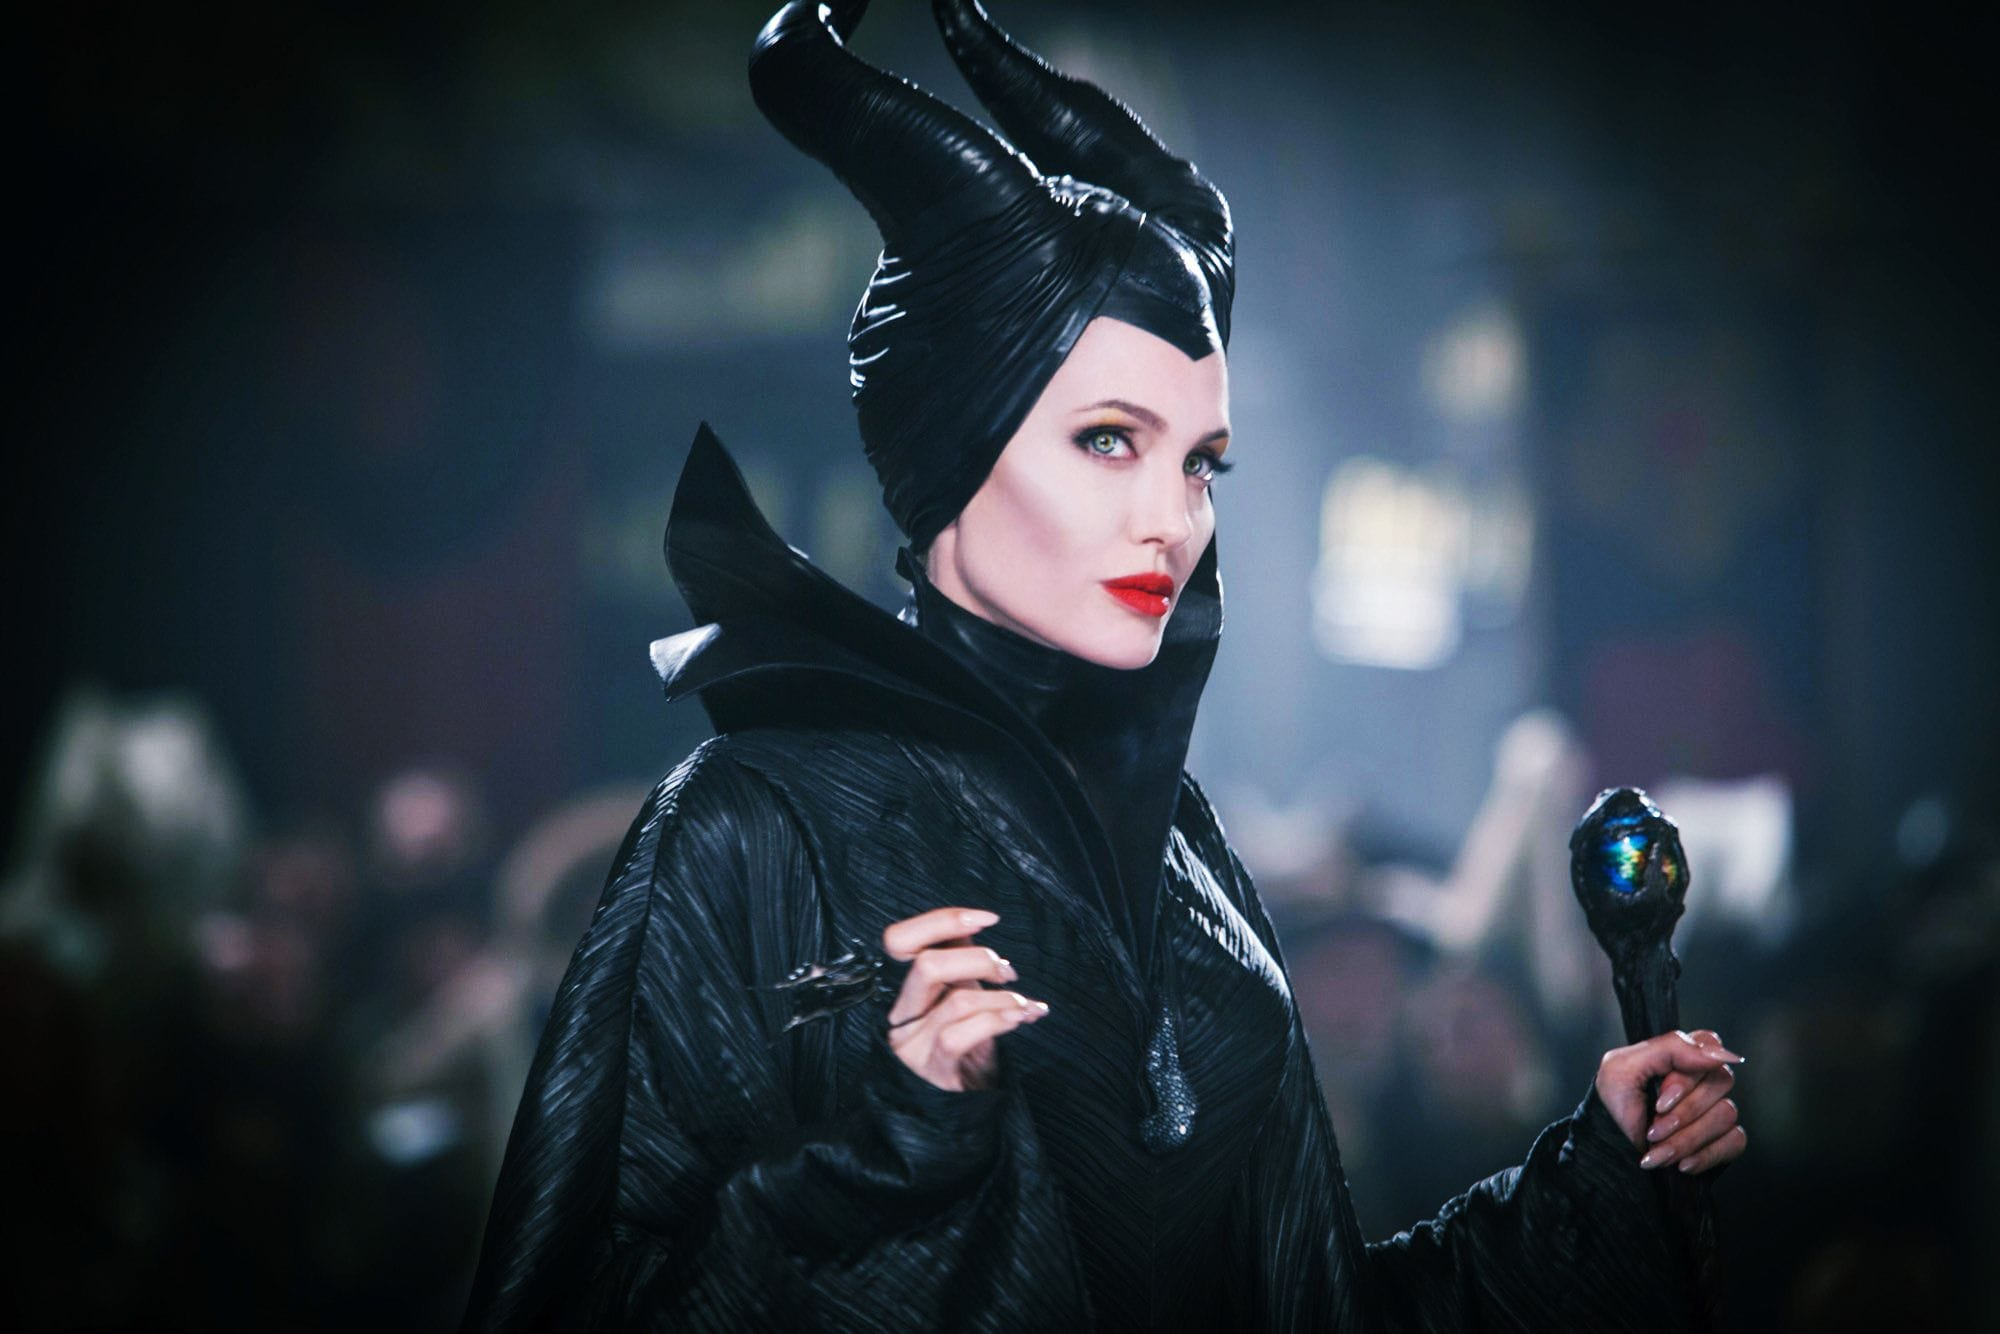 Maleficent Wallpapers hd